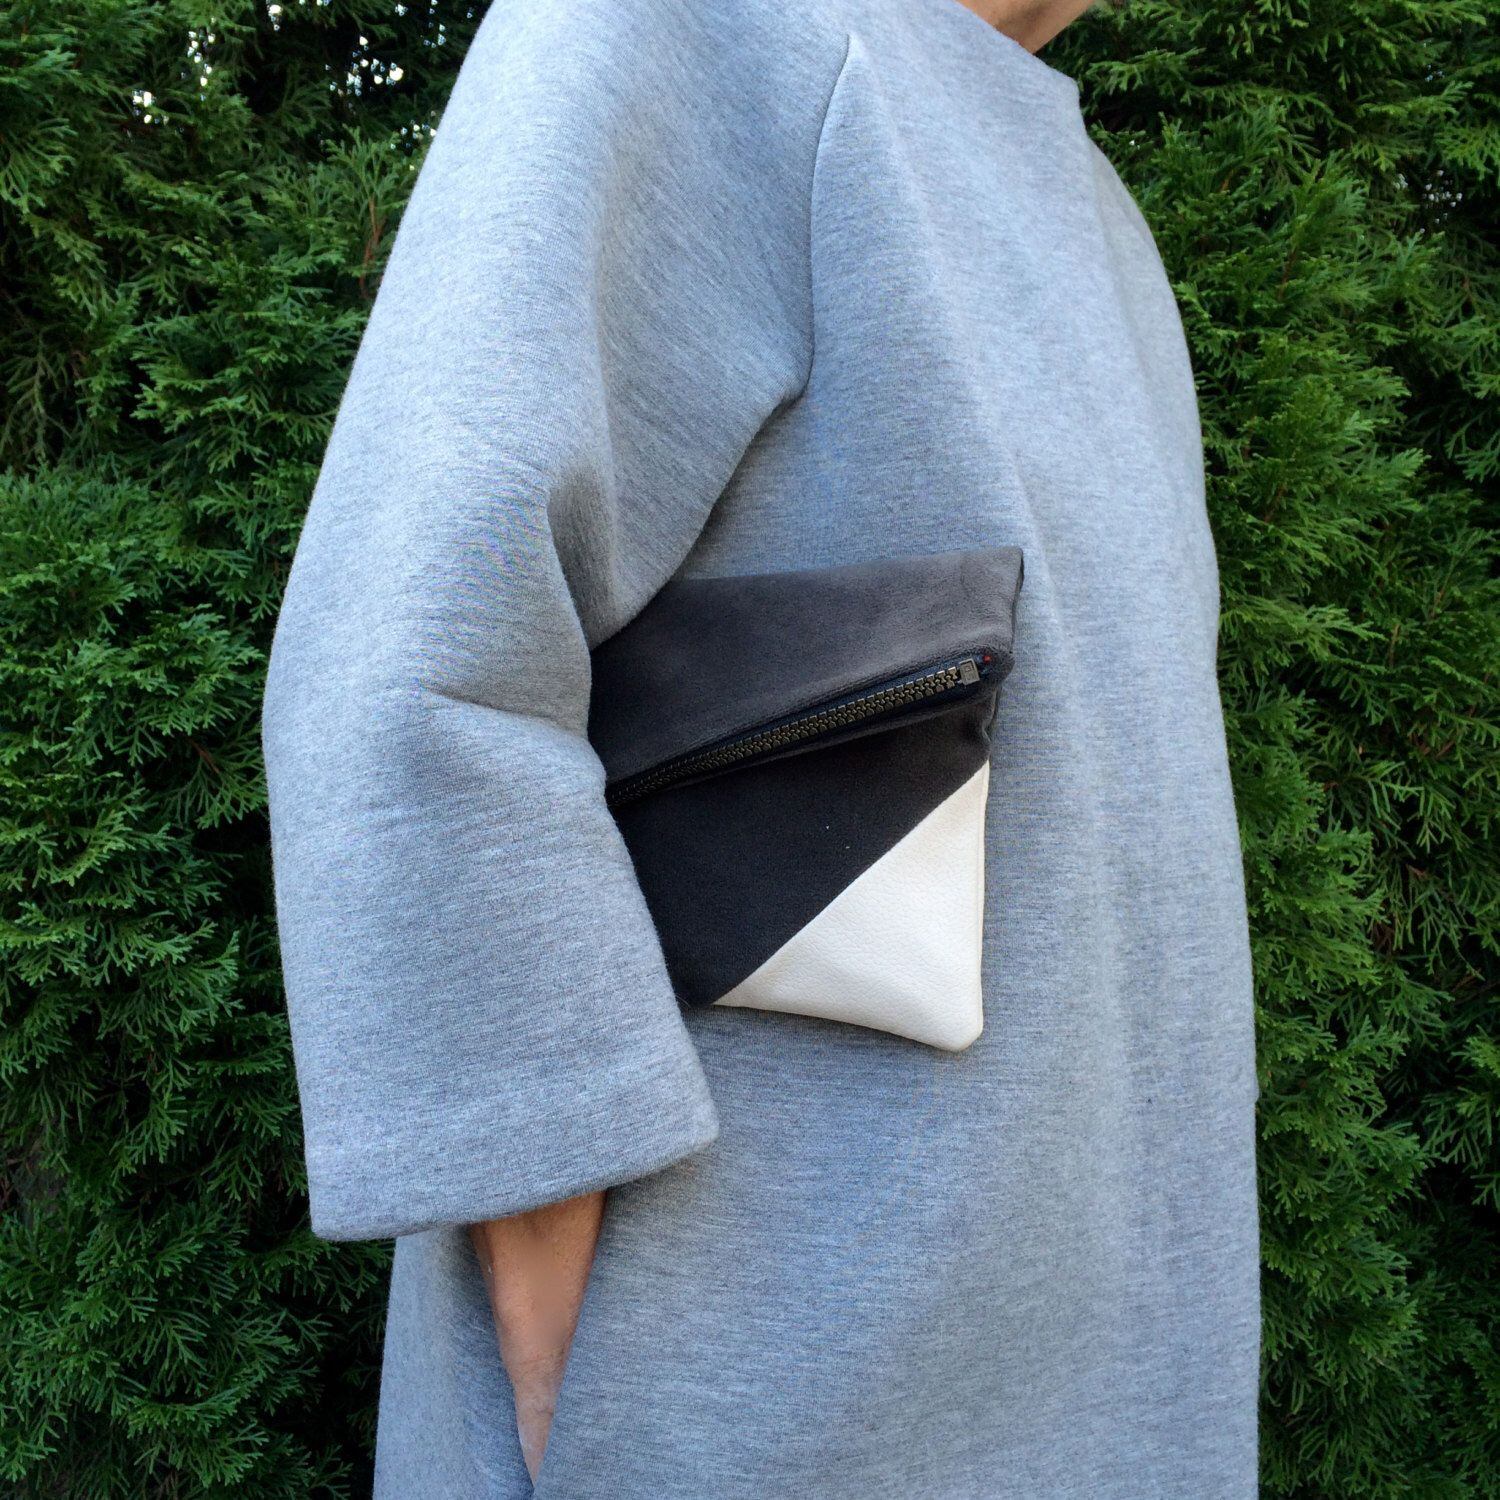 The City Forager- Simple clutch, lined purse, pouch, bag by yaysayerbags on Etsy https://www.etsy.com/listing/249208145/the-city-forager-simple-clutch-lined